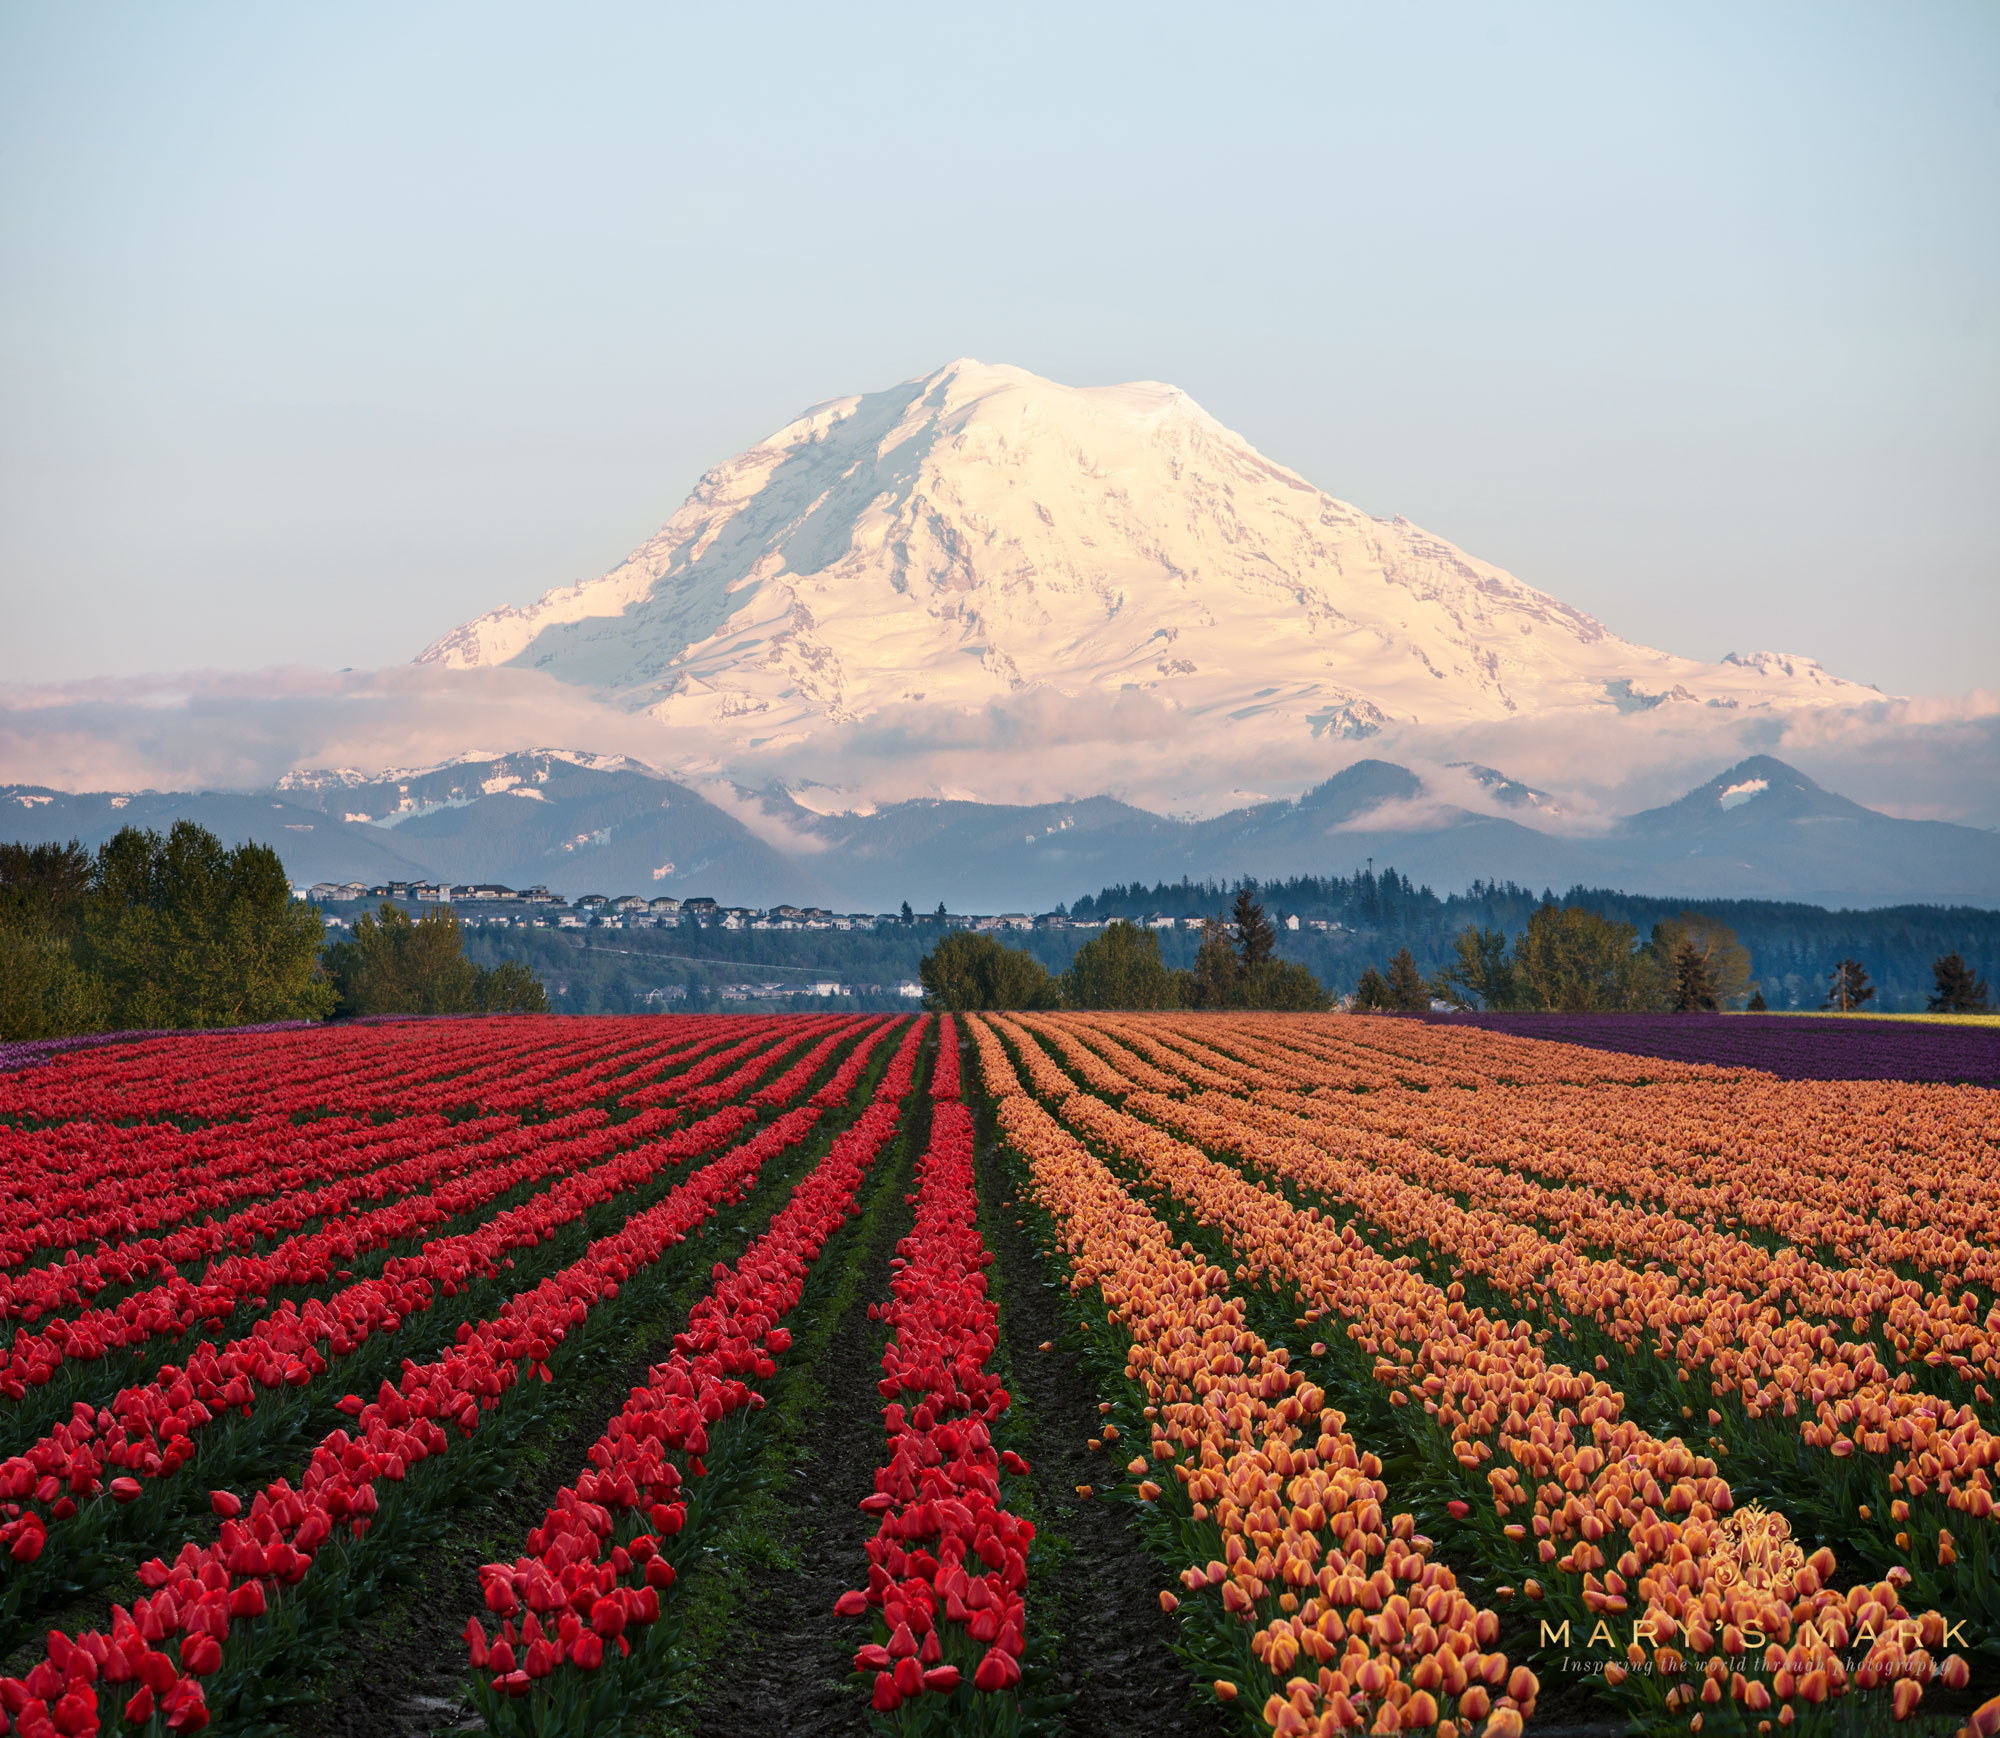 Mount-Rainier-and-Tulips-in-Washington-by-Mary-Parkhill-of-Mary's-Mark-Photography.jpg